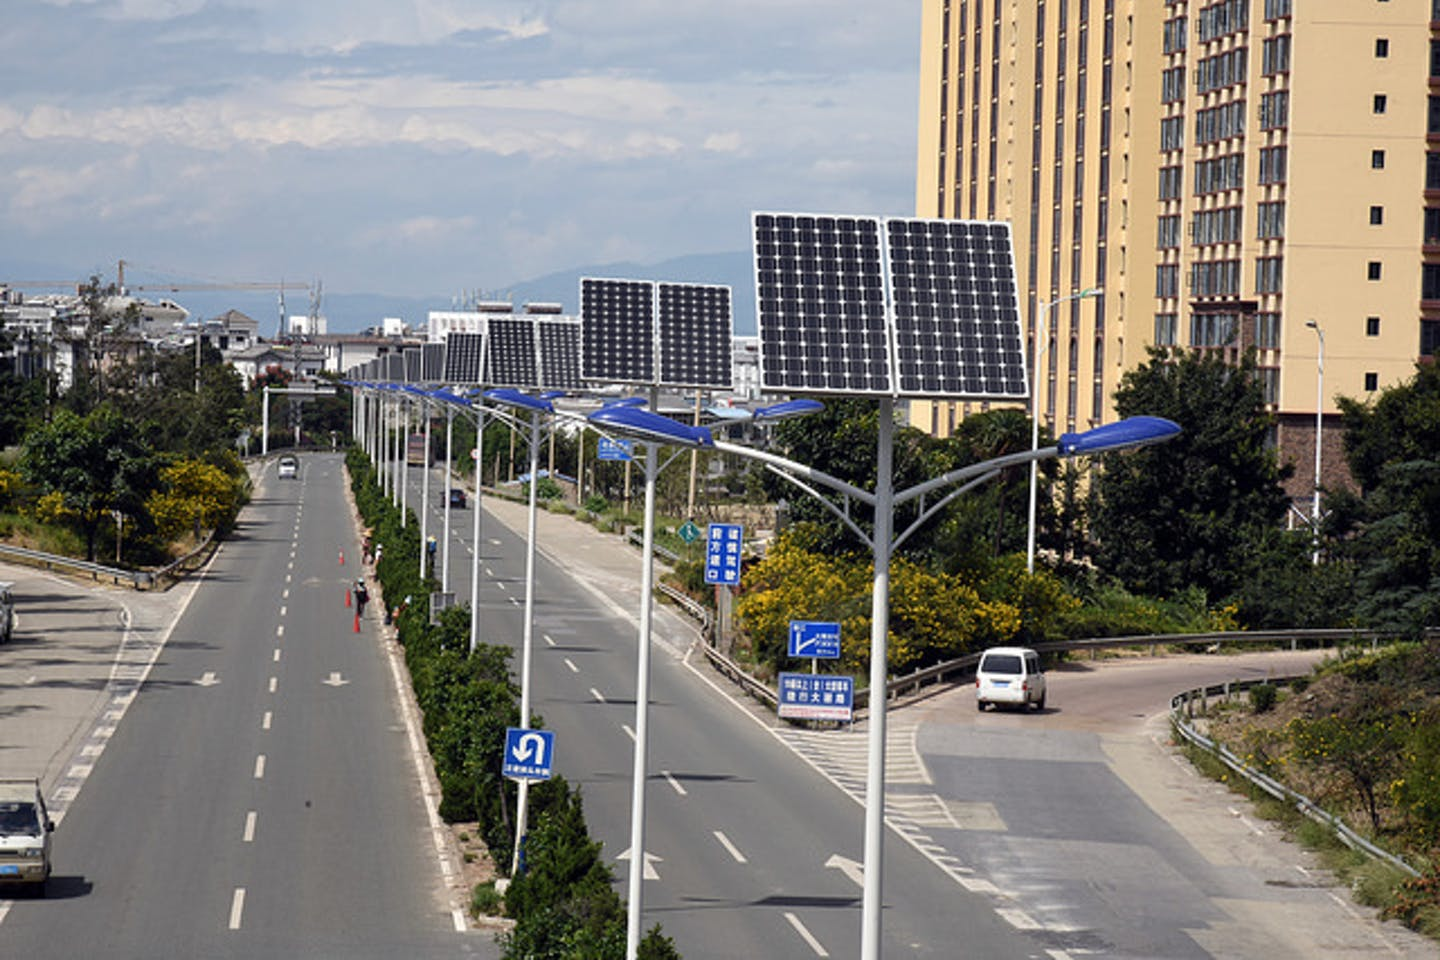 solar powered streetlamps in Yunnan China